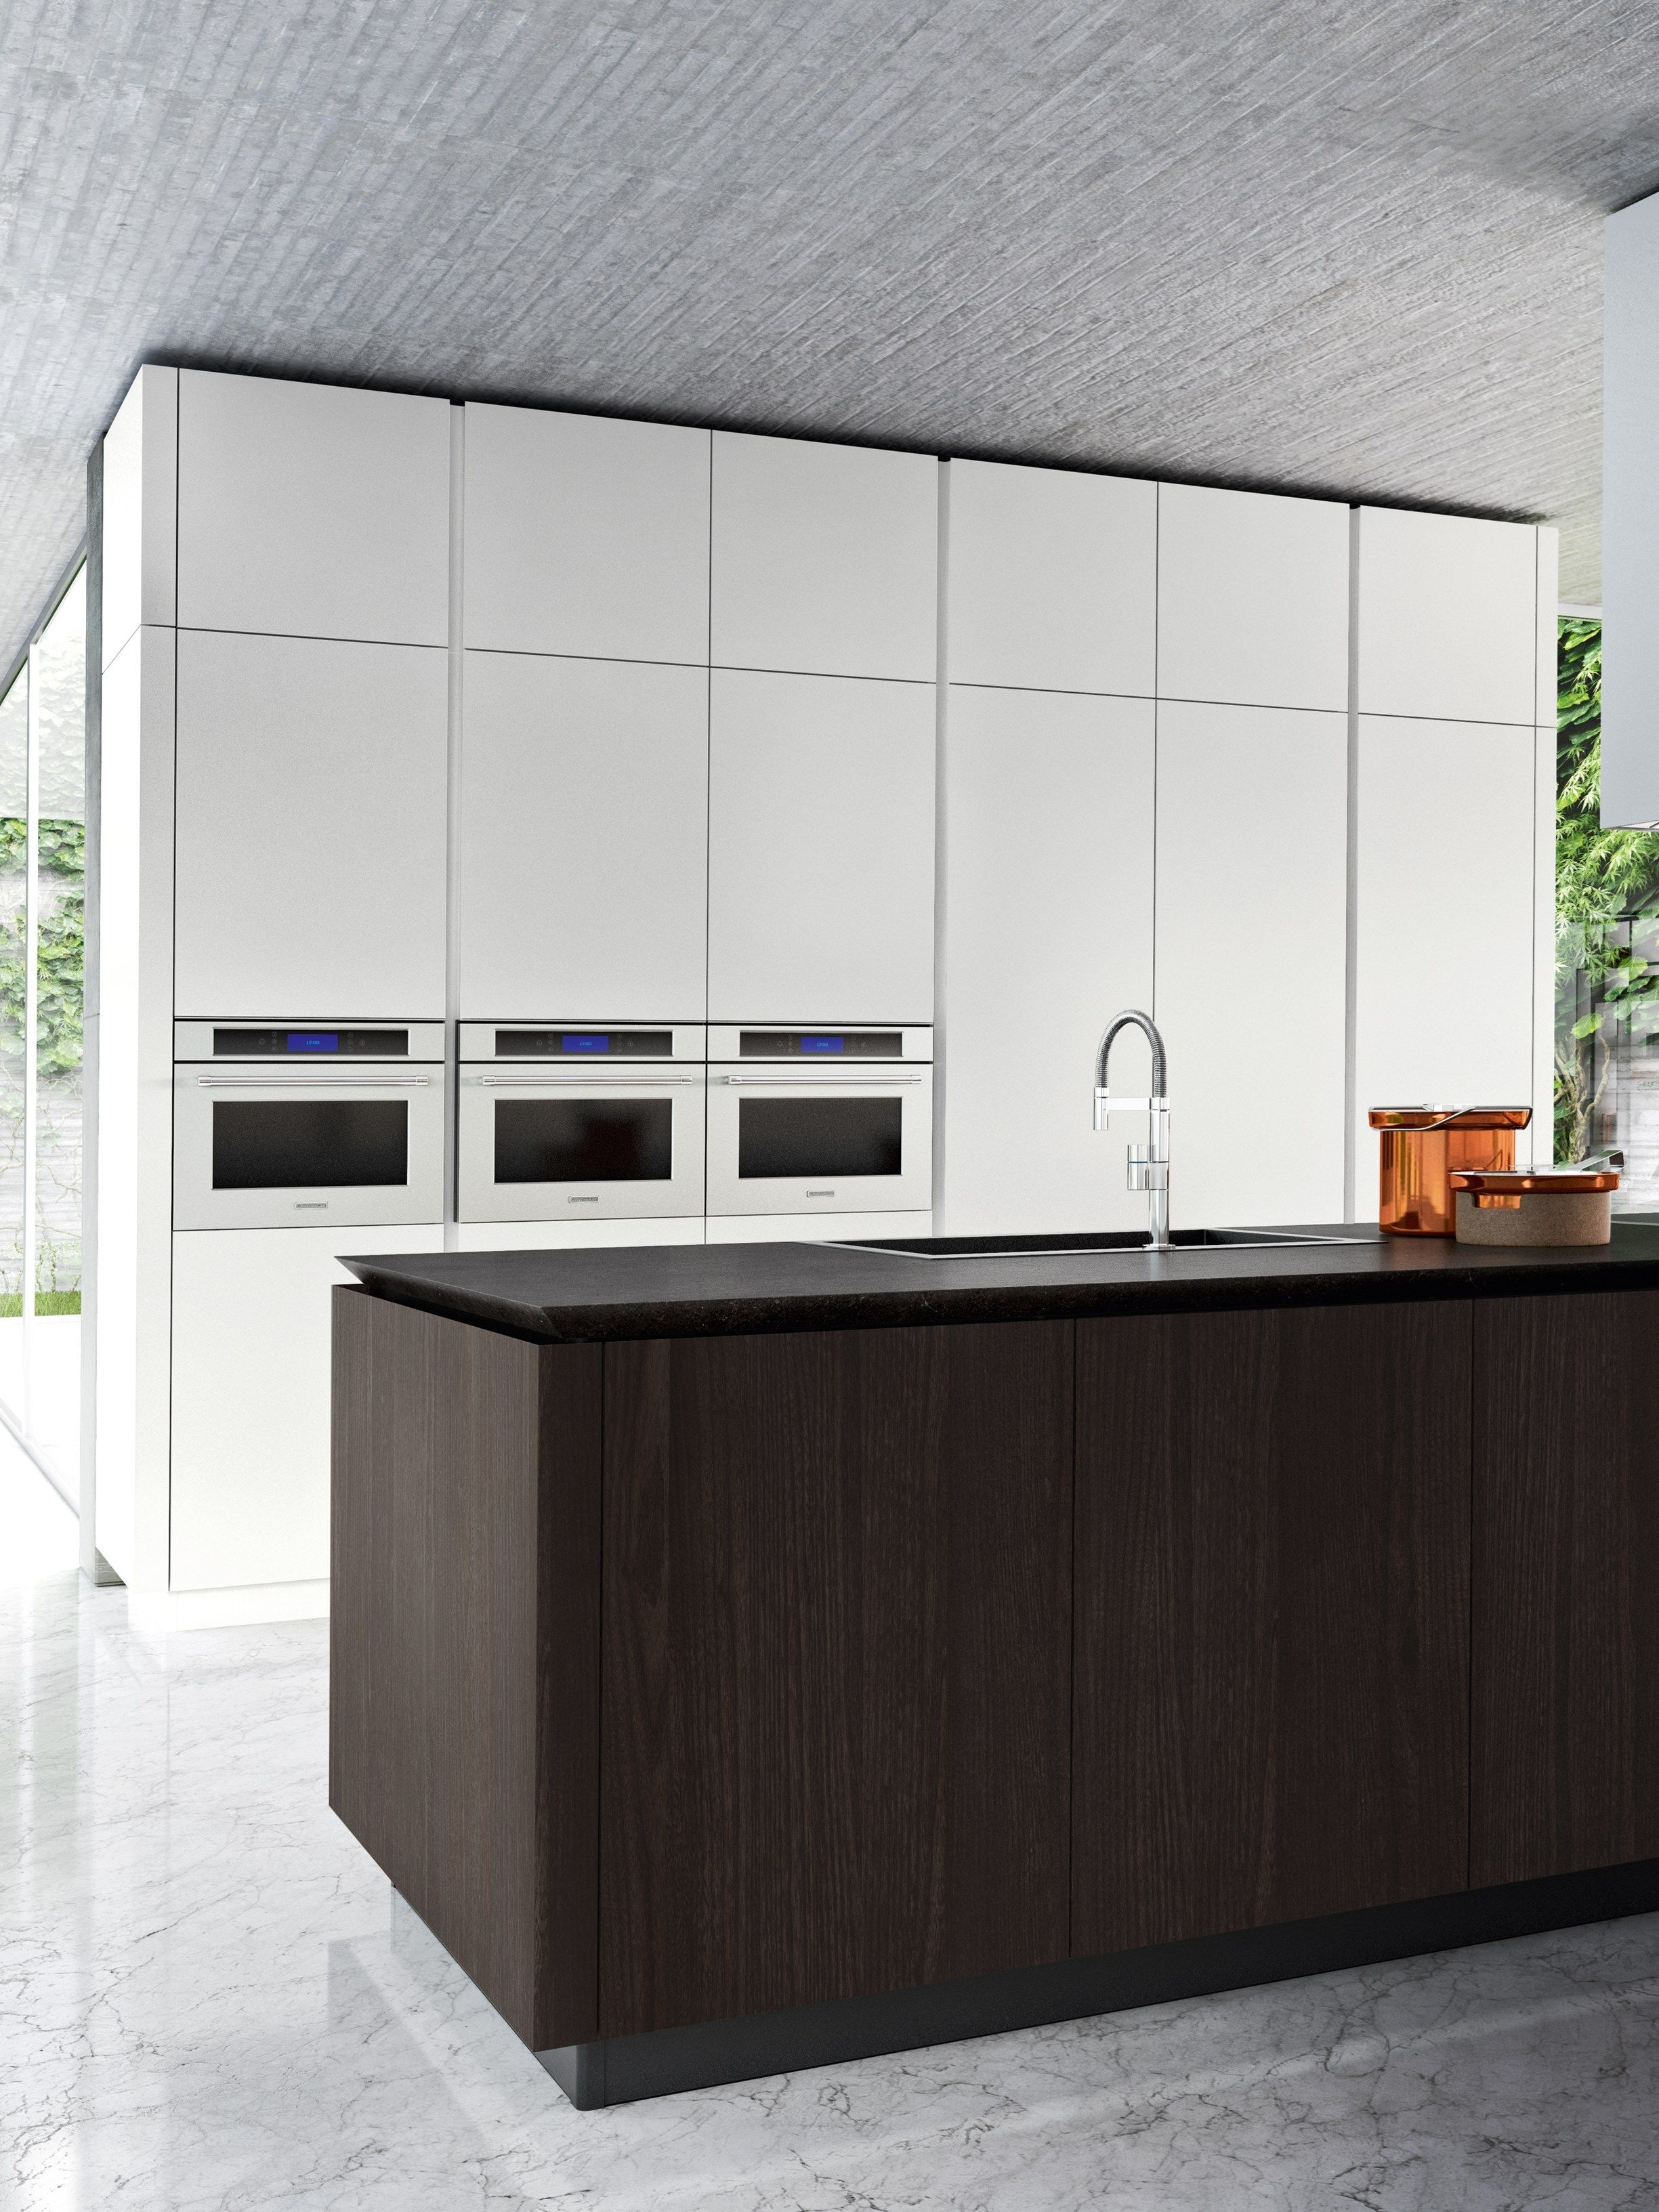 Adding a large island can help the fluidity of the kitchen triangle ...